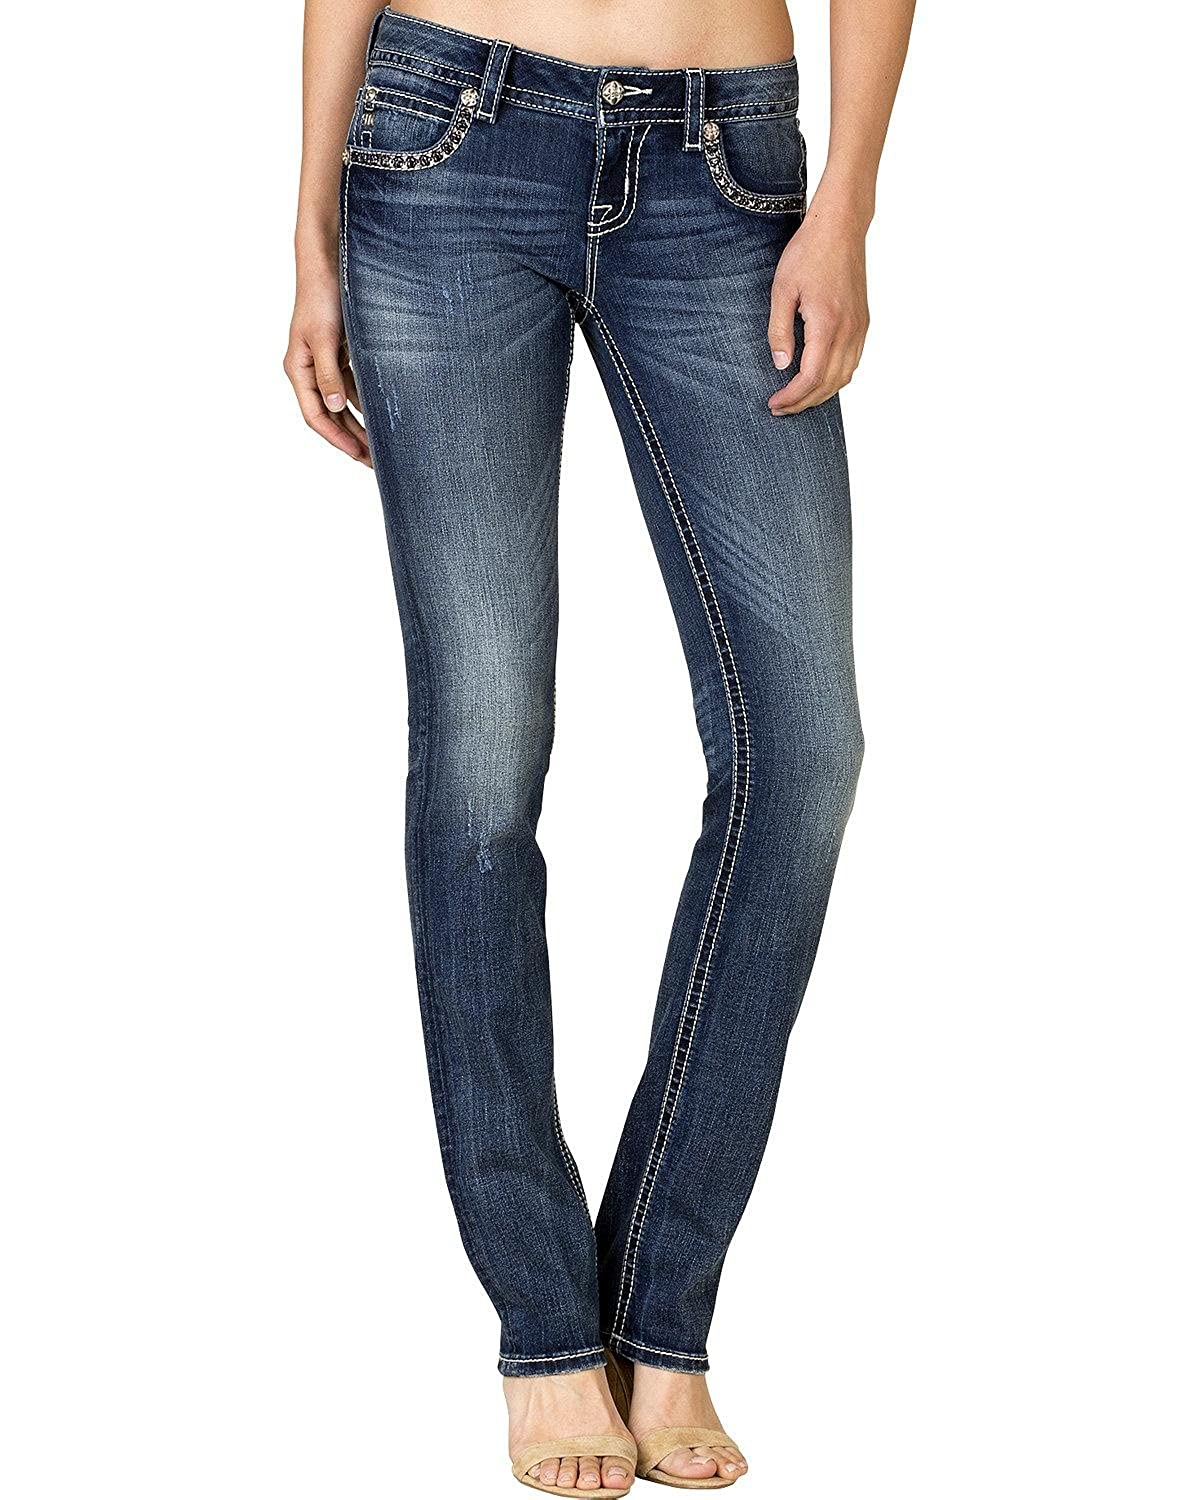 Miss Me Women's Dark Wash Flap Pocket Straight Jeans - Jp7719t Mk 621